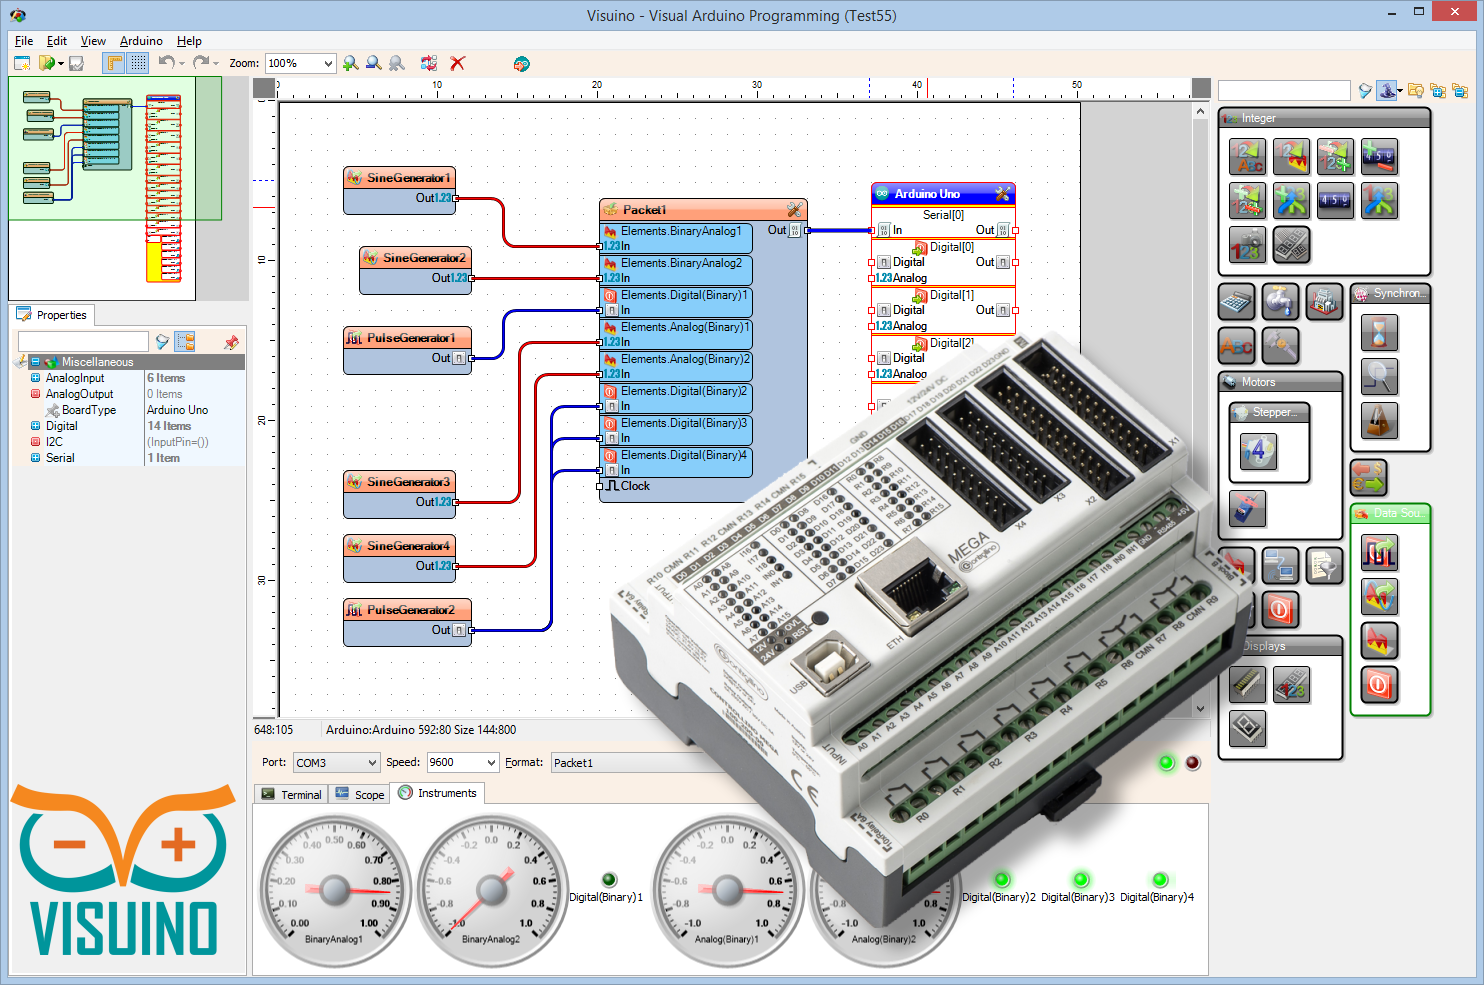 New Visual Arduino programming tool - Page 3